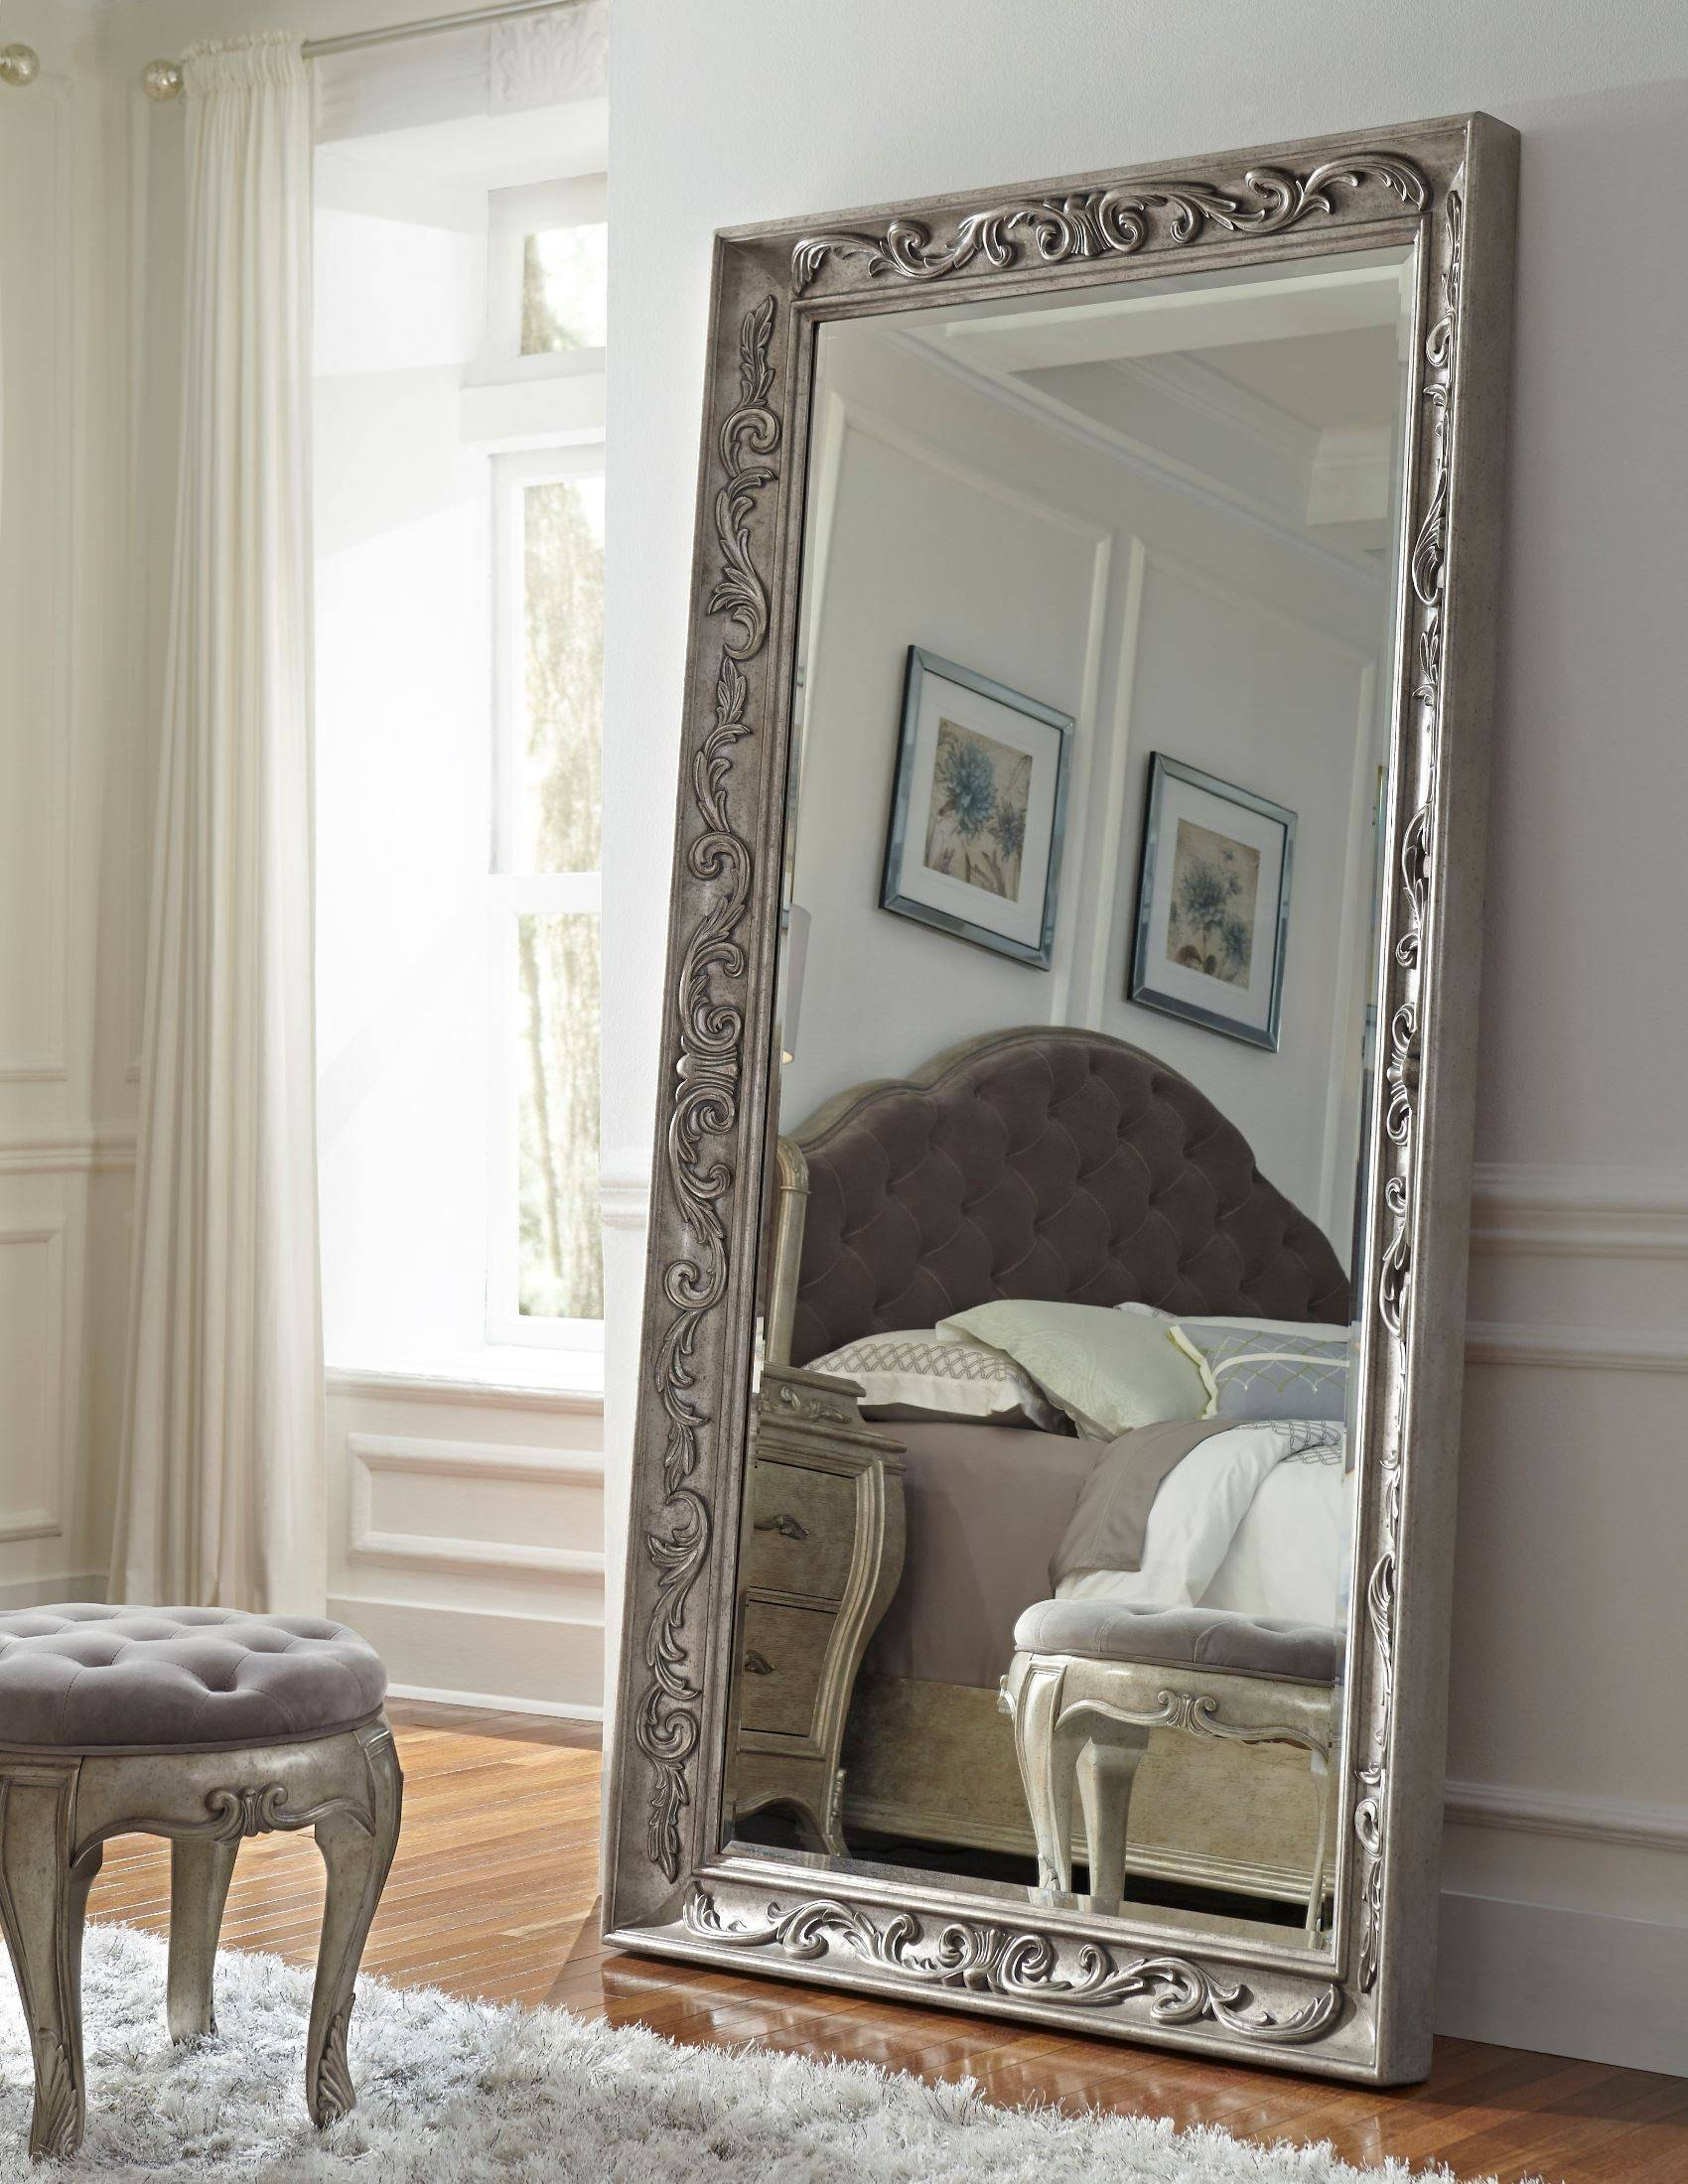 Rhianna Silver Patina Floor Mirror From Pulaski 788112#16 Office Regarding Baroque Floor Mirrors (View 14 of 15)